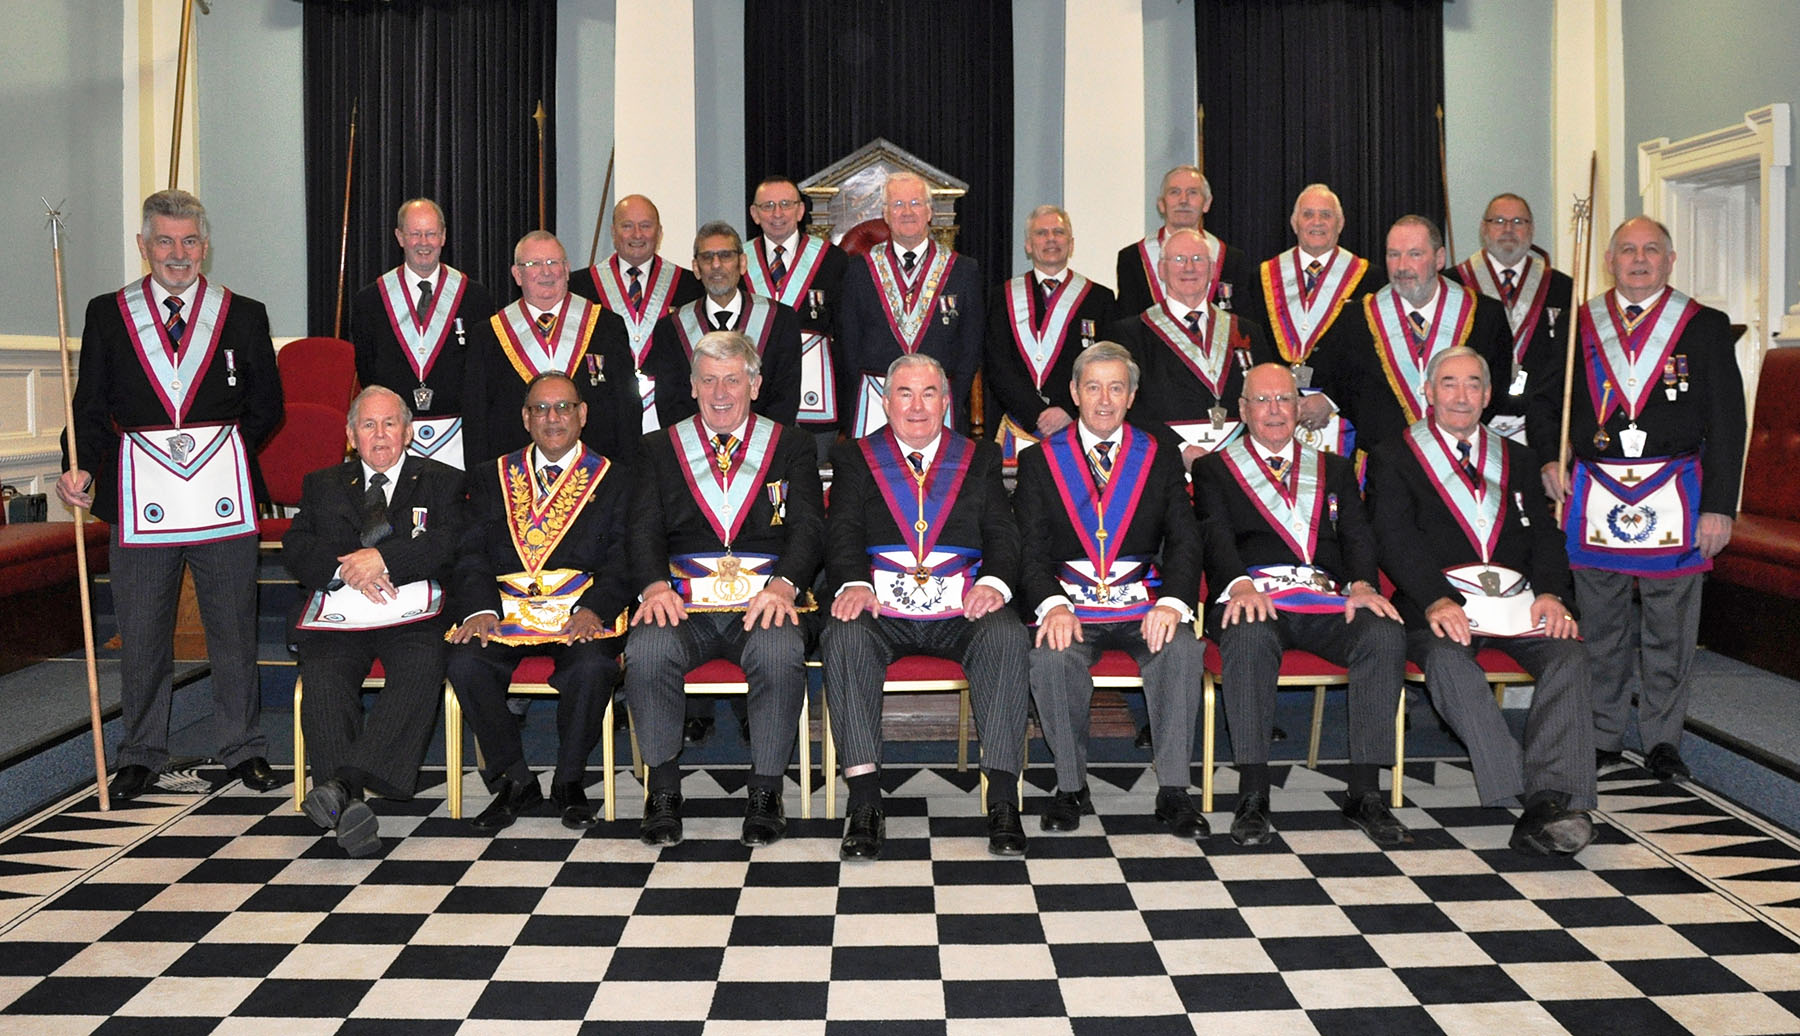 The Assistant Provincial Grand Master is Elevated into Royal Ark Mariner – again